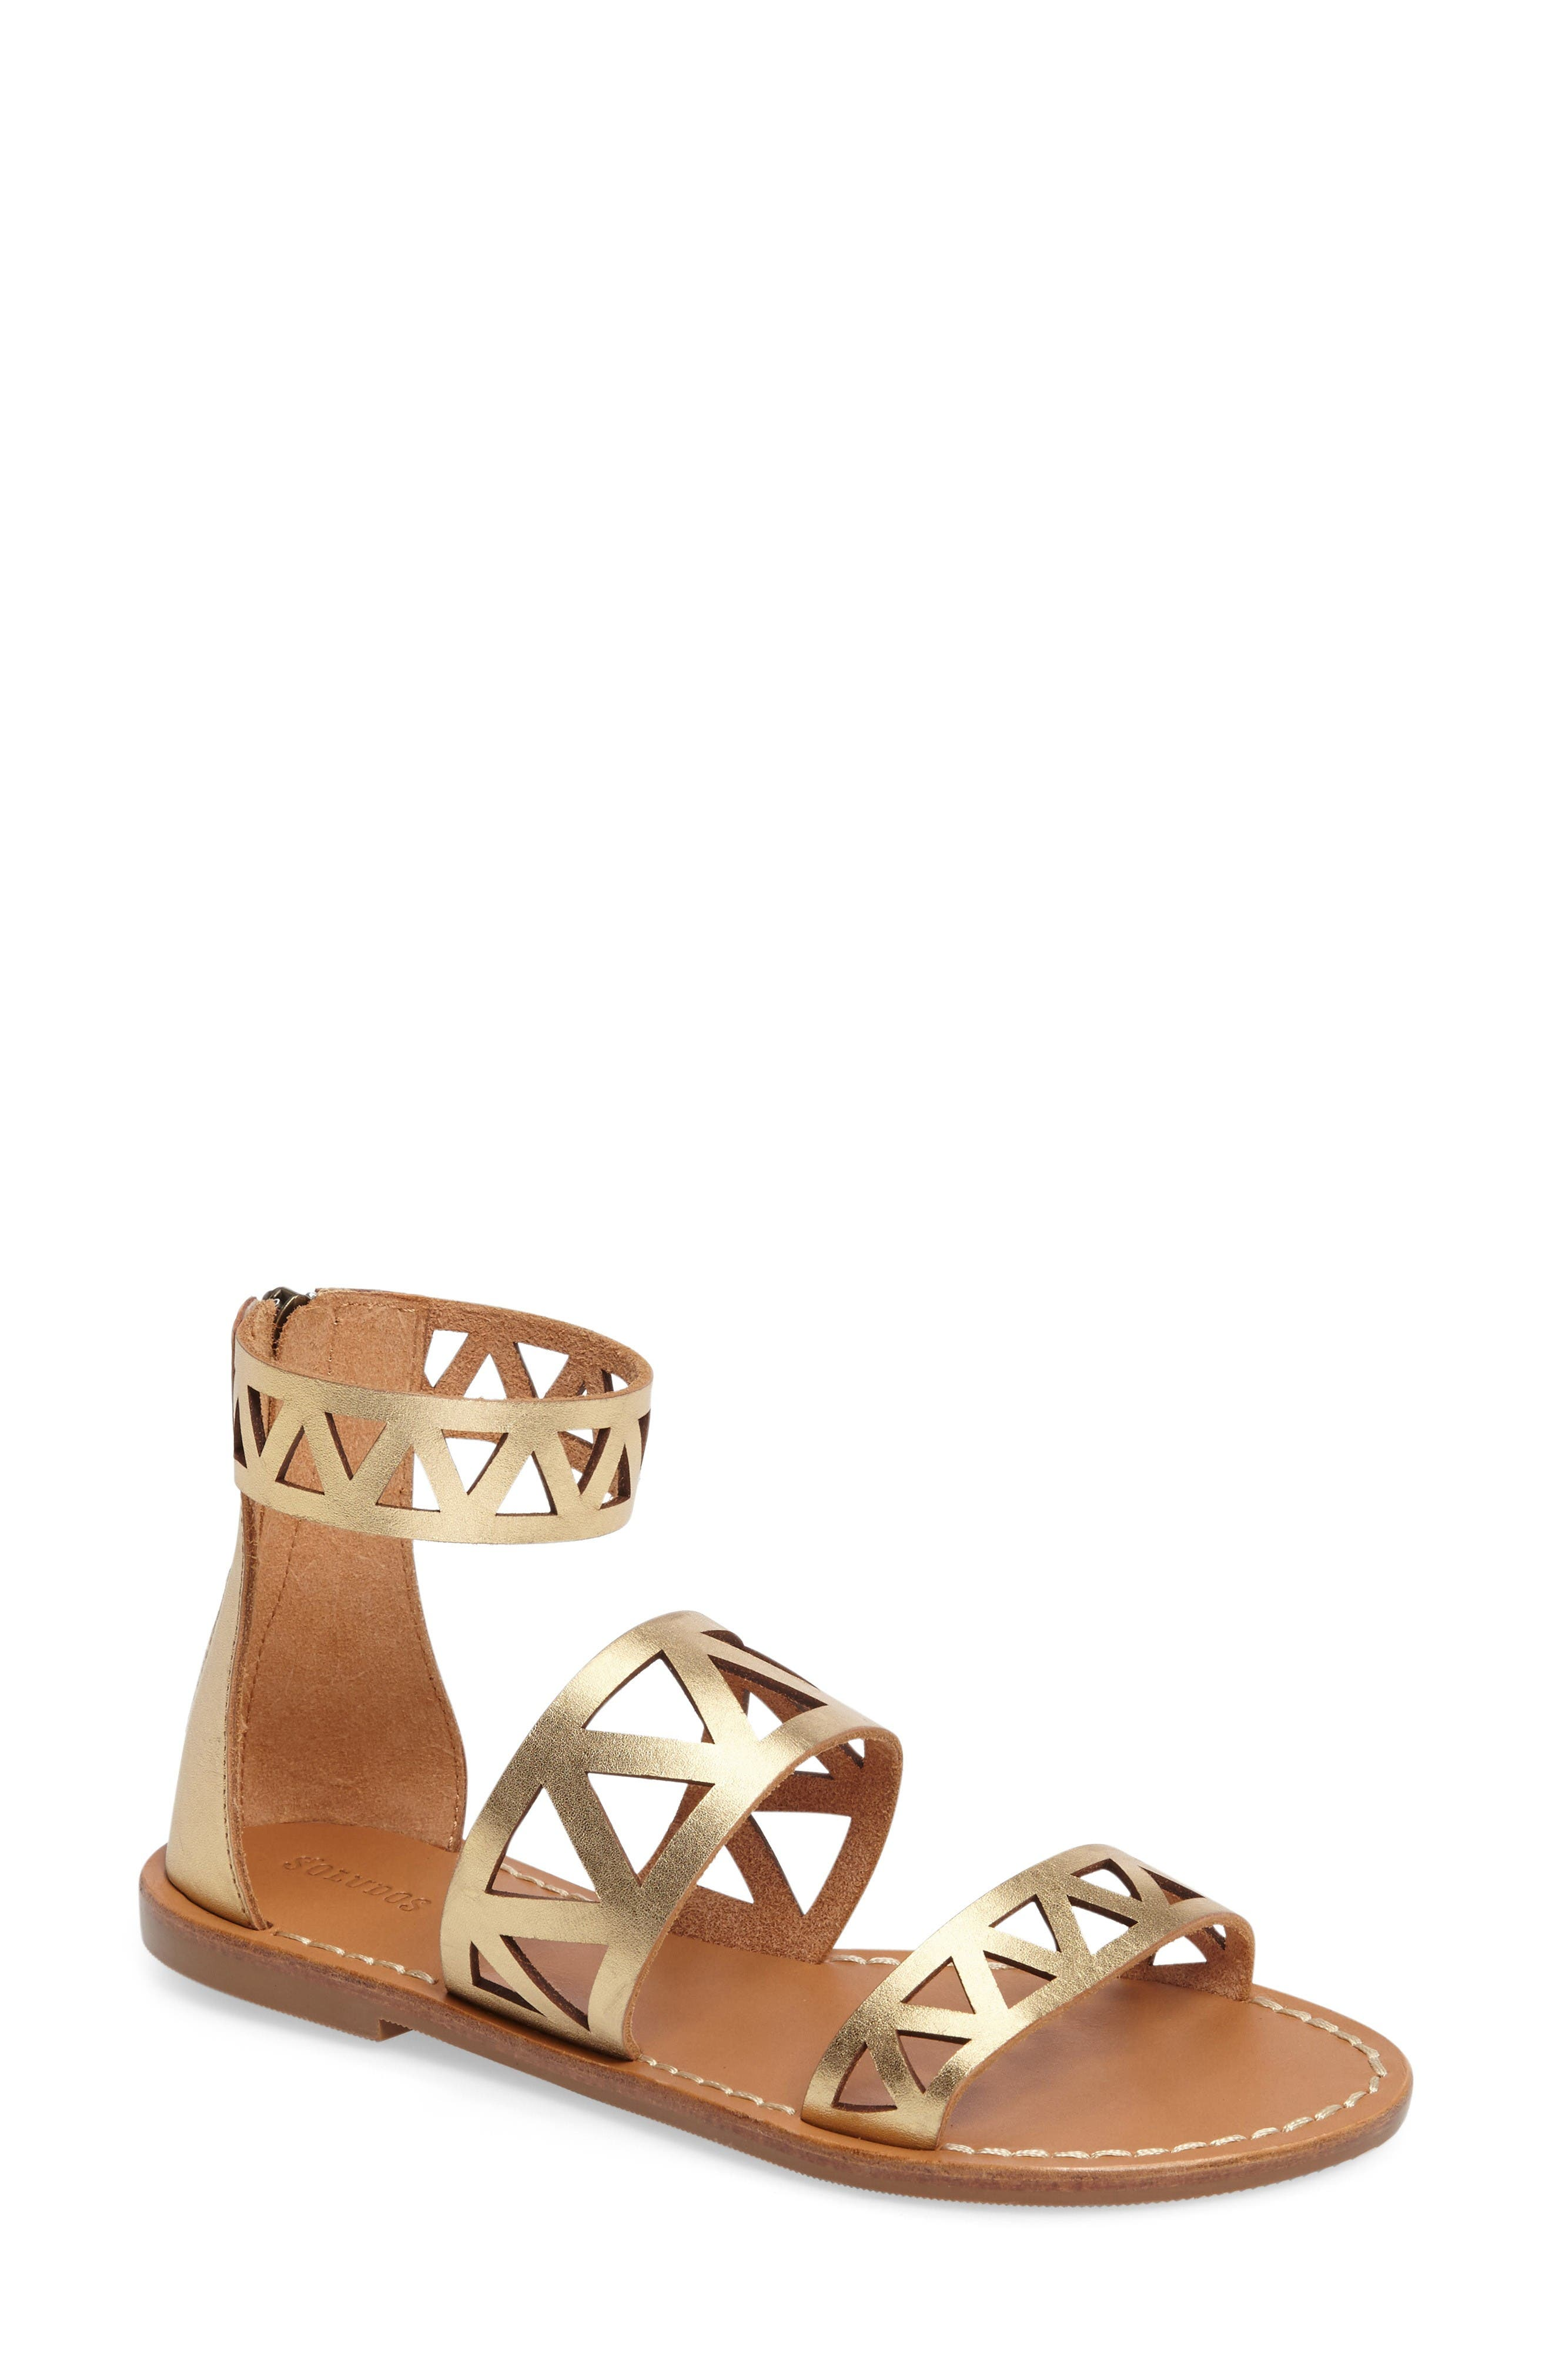 Ankle Cuff Sandal,                         Main,                         color, Gold Leather